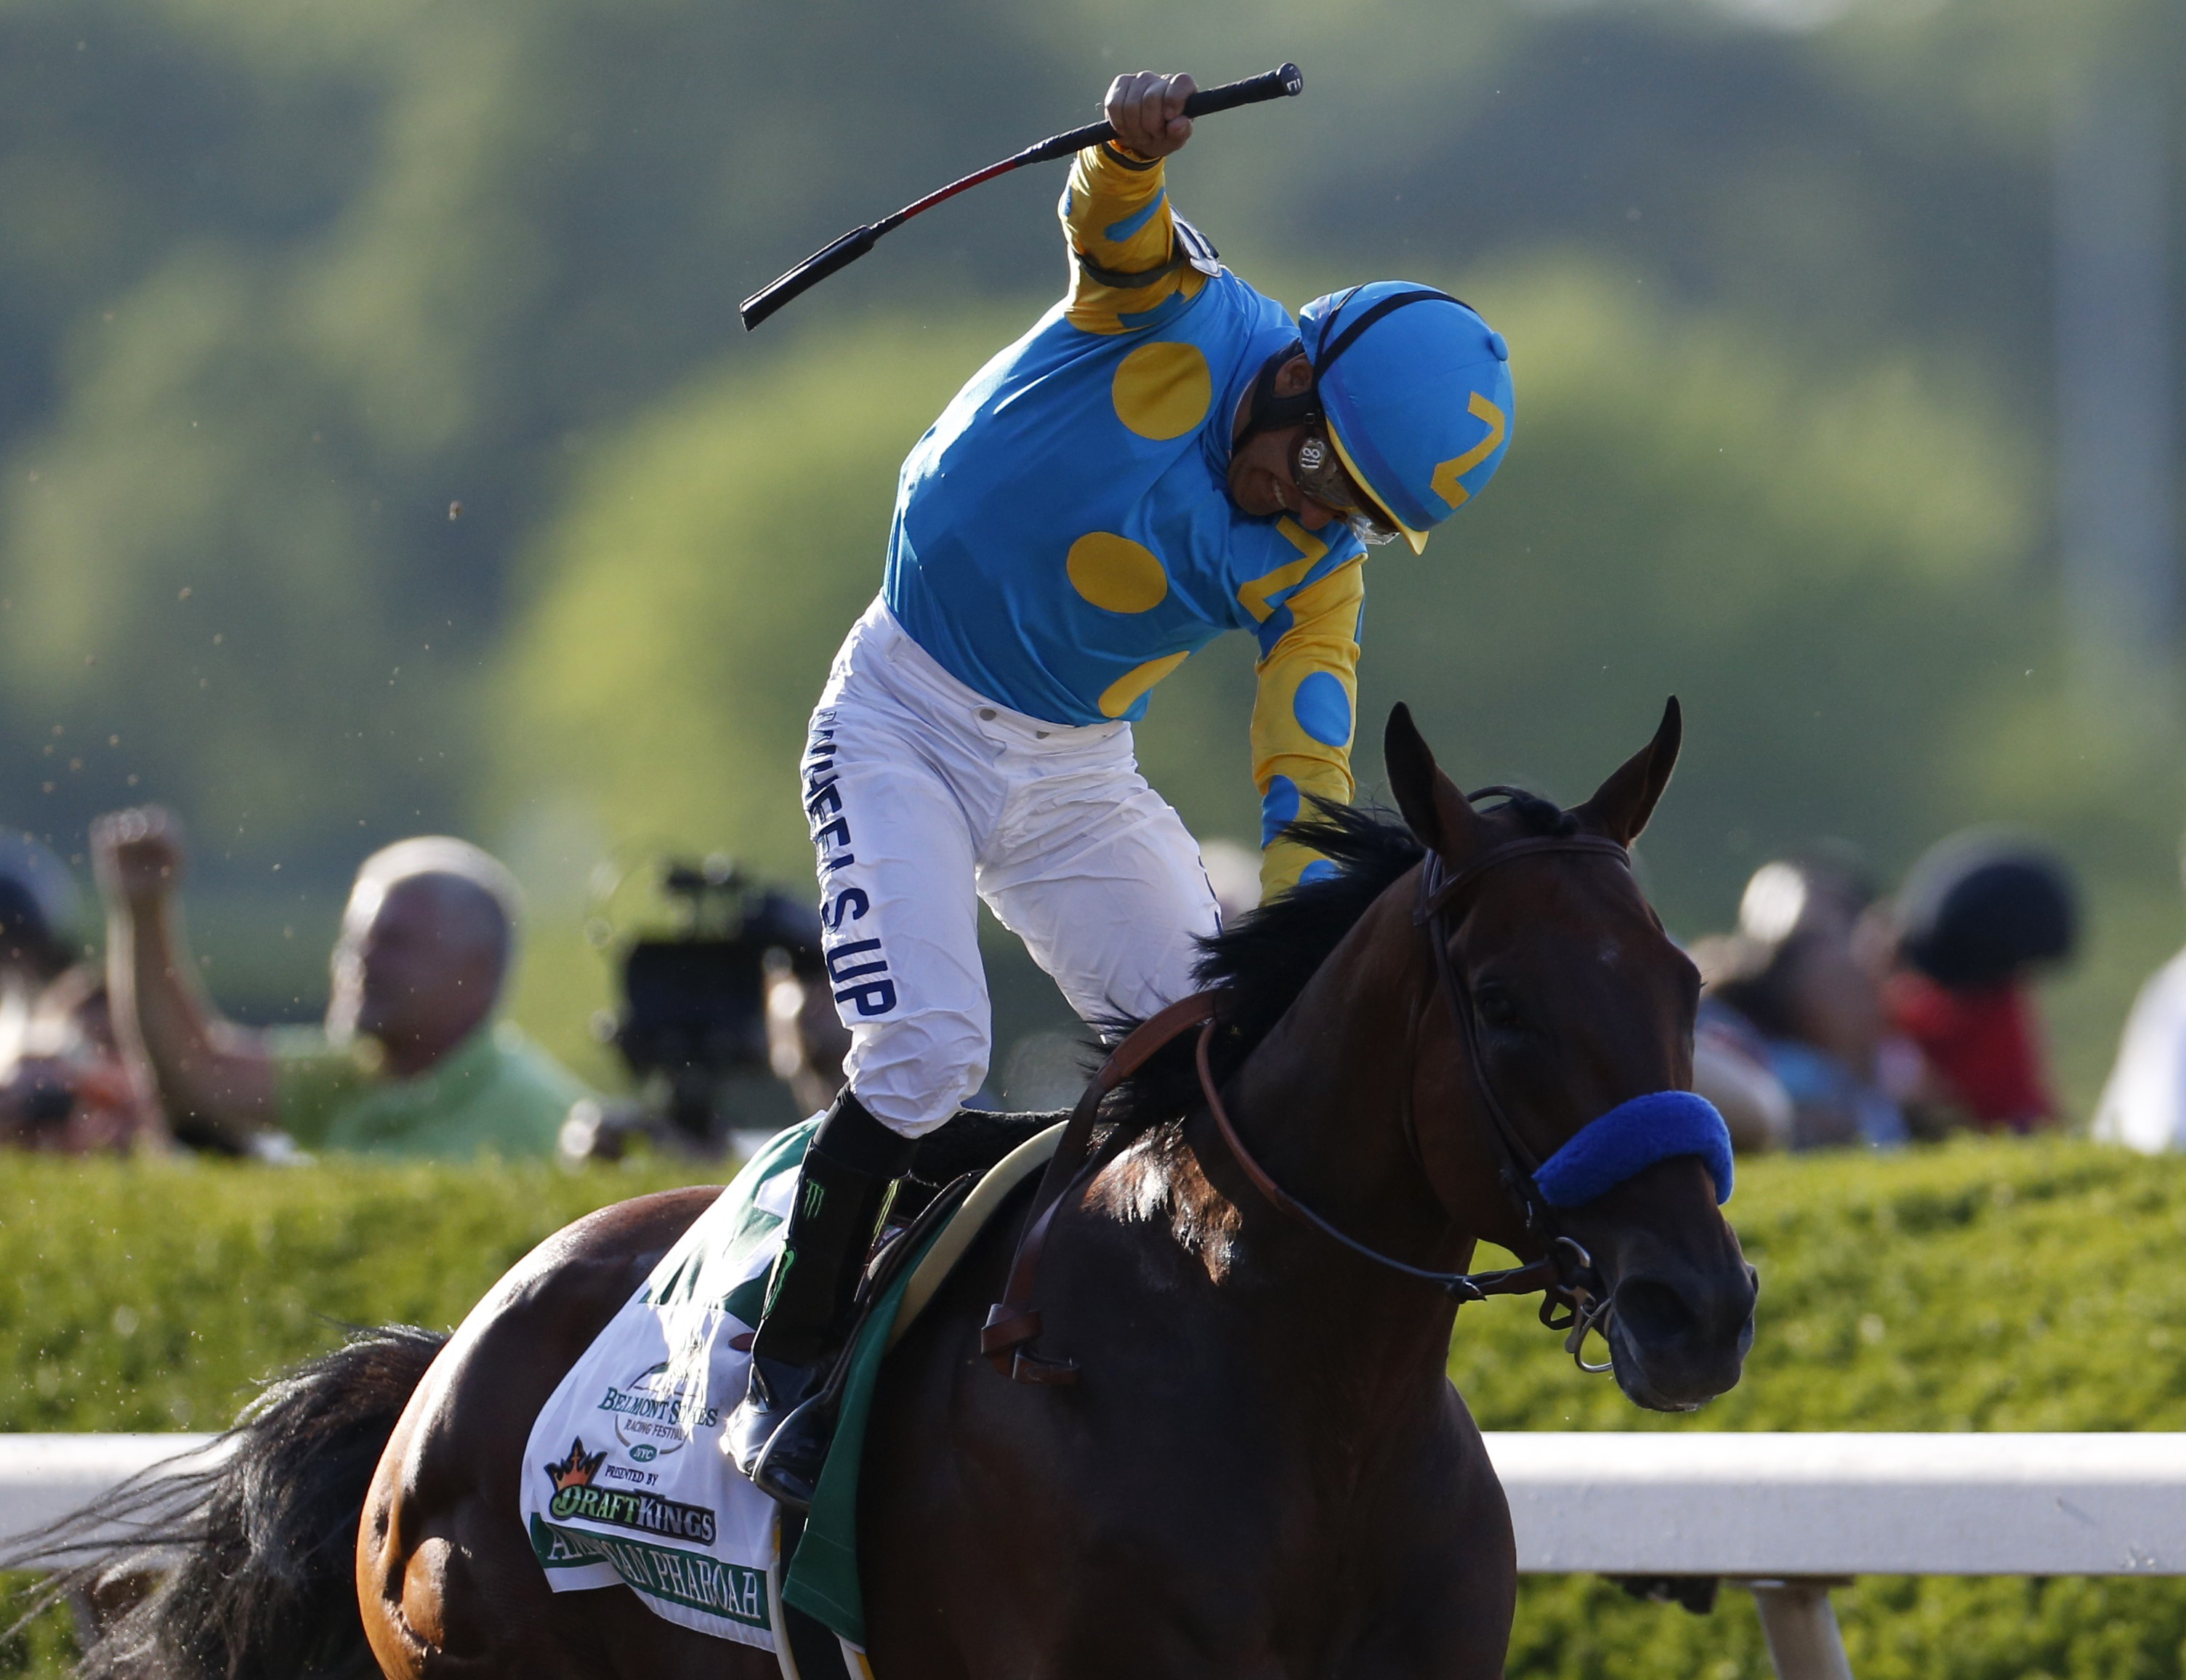 Espinoza celebrates after winning the Triple Crown. Photo by Shannon Stapleton/Reuters